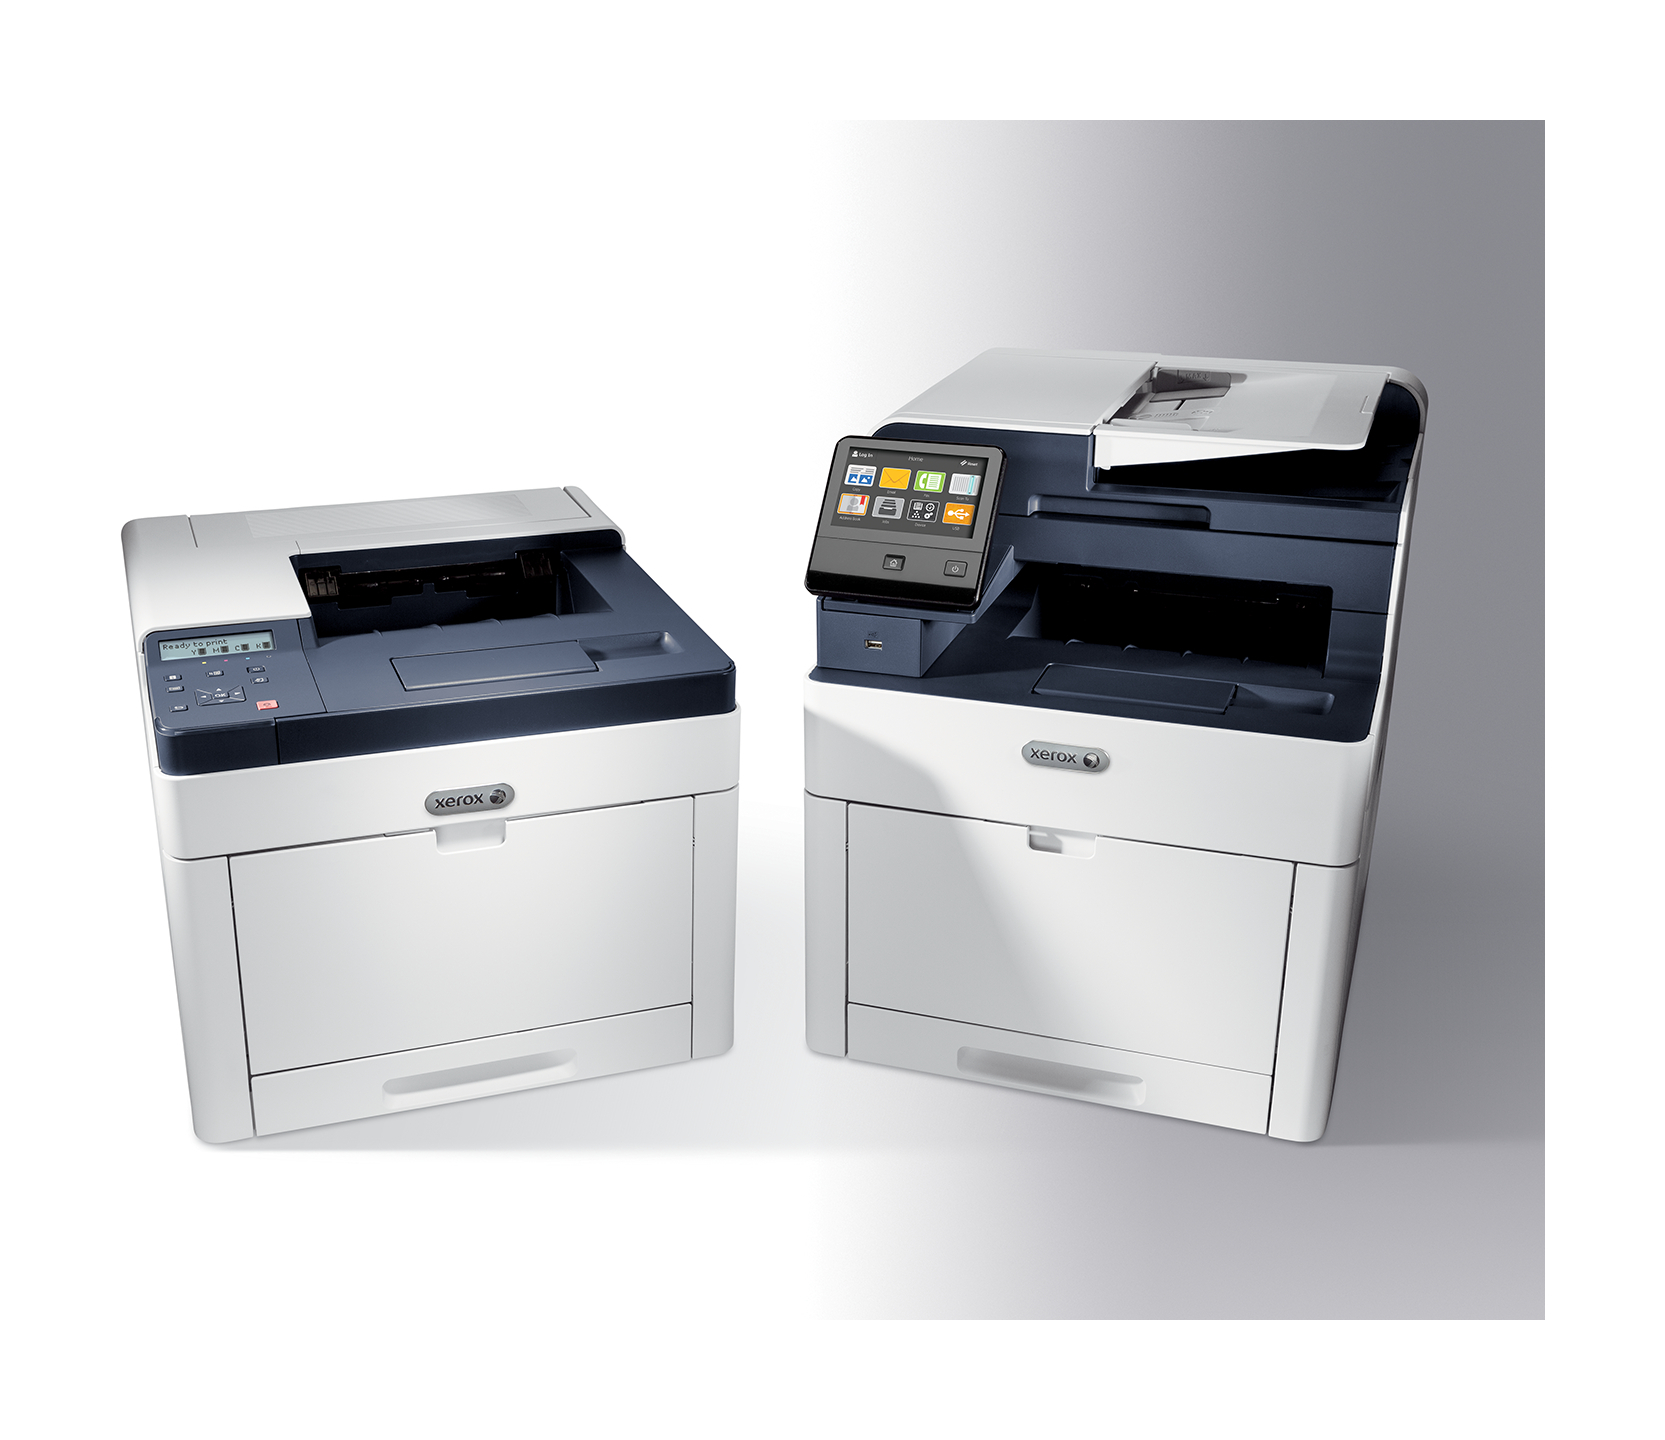 depot printers office com all one ip pixma canon wireless in walmart inkjet printer